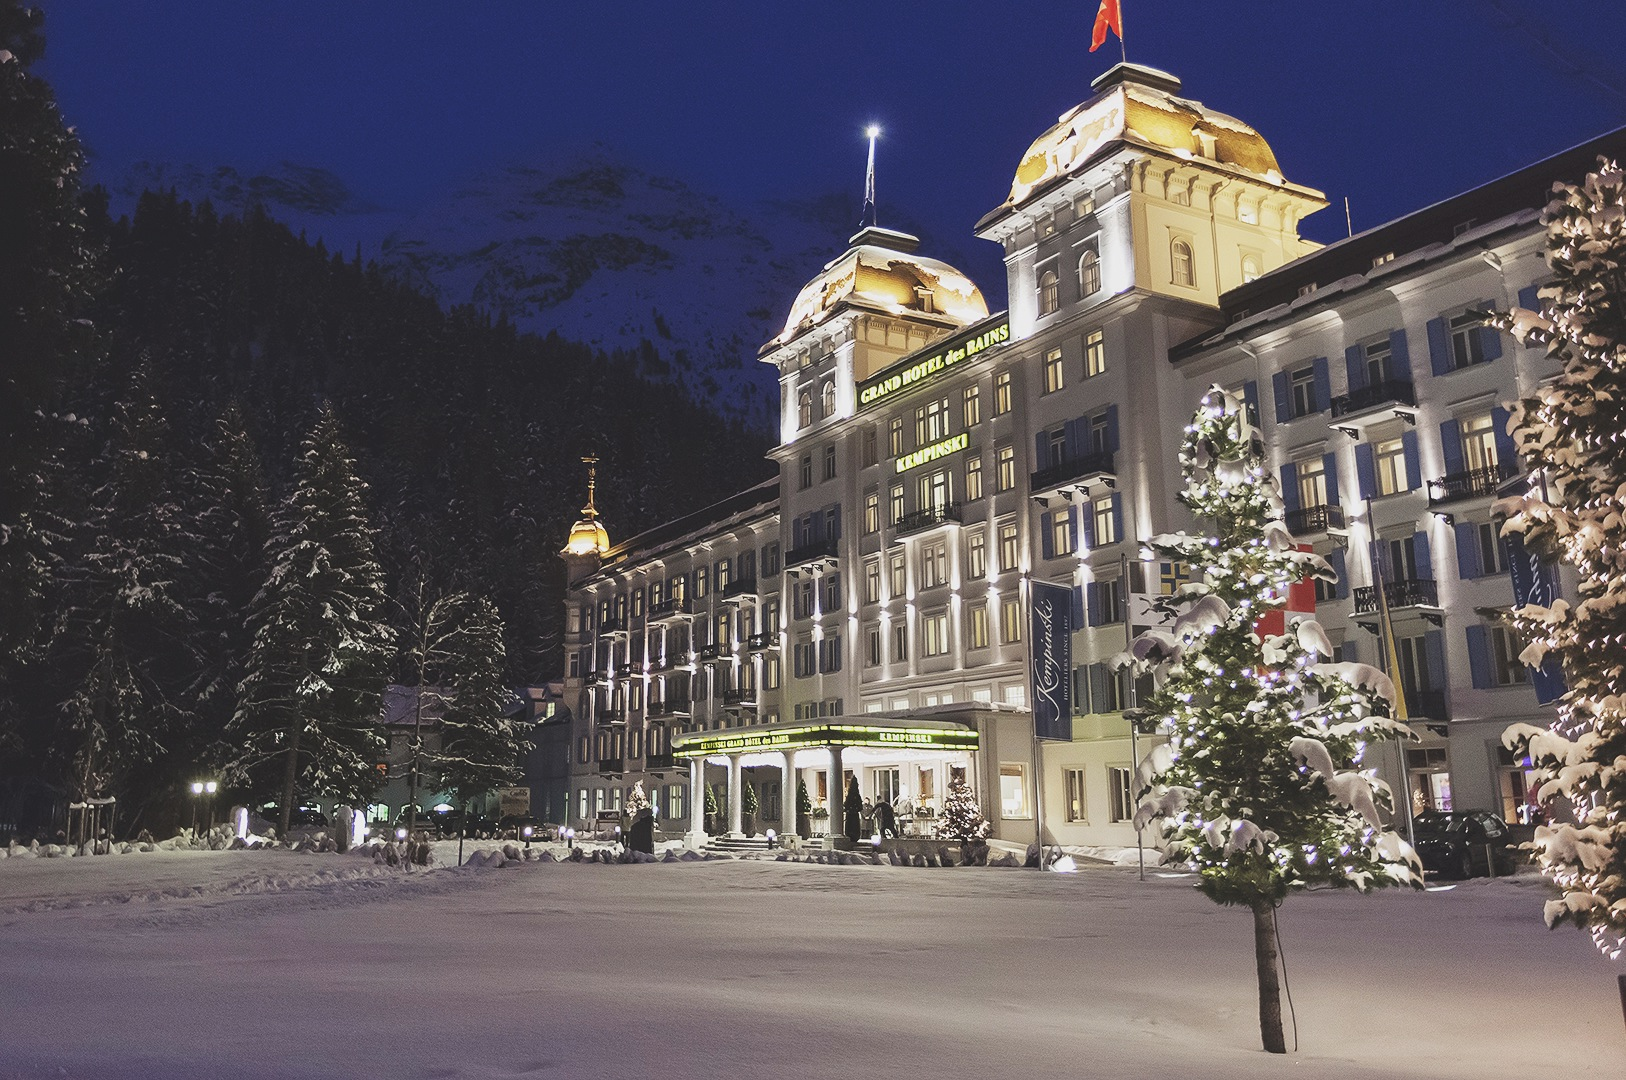 Kempinski-Grand-Hotel-des-Bains-St-Moritz-150-Engadin-Top-Of-The-World-Luxury-Season-Opening-Ski-2015-Disi-Couture-01